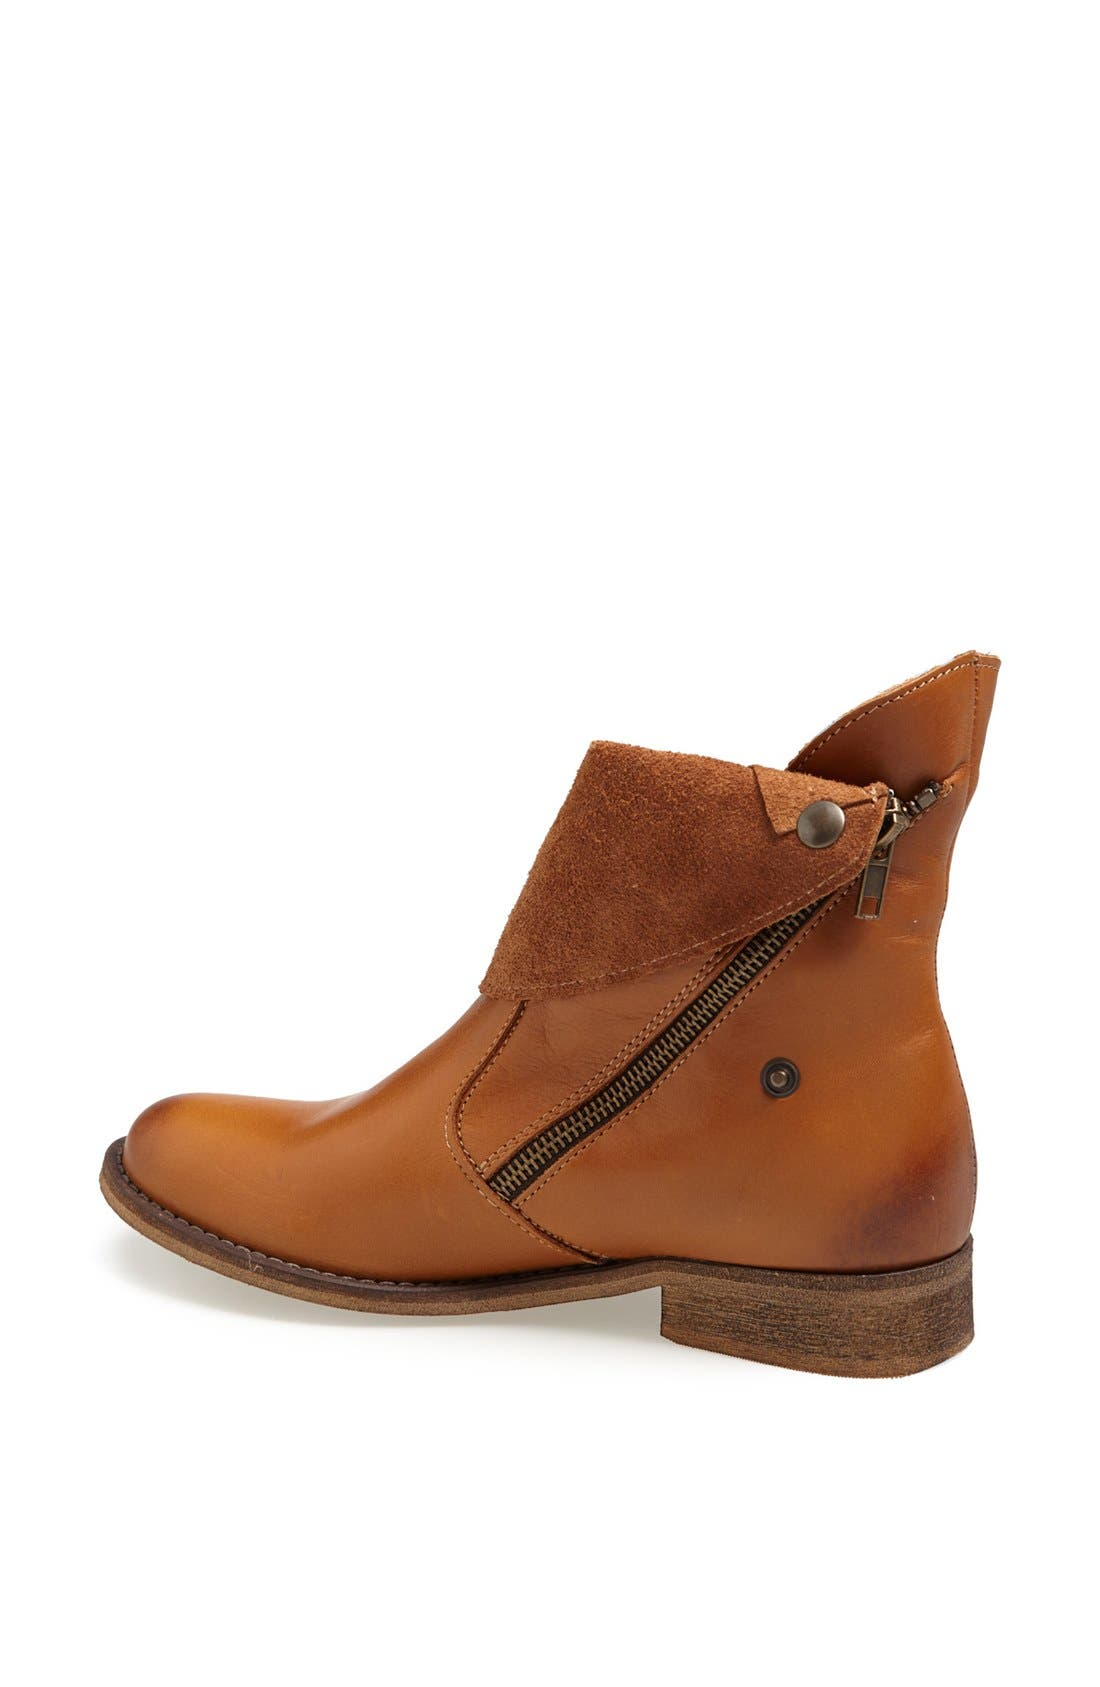 Alternate Image 2  - Steve Madden 'Solemate' Leather Bootie